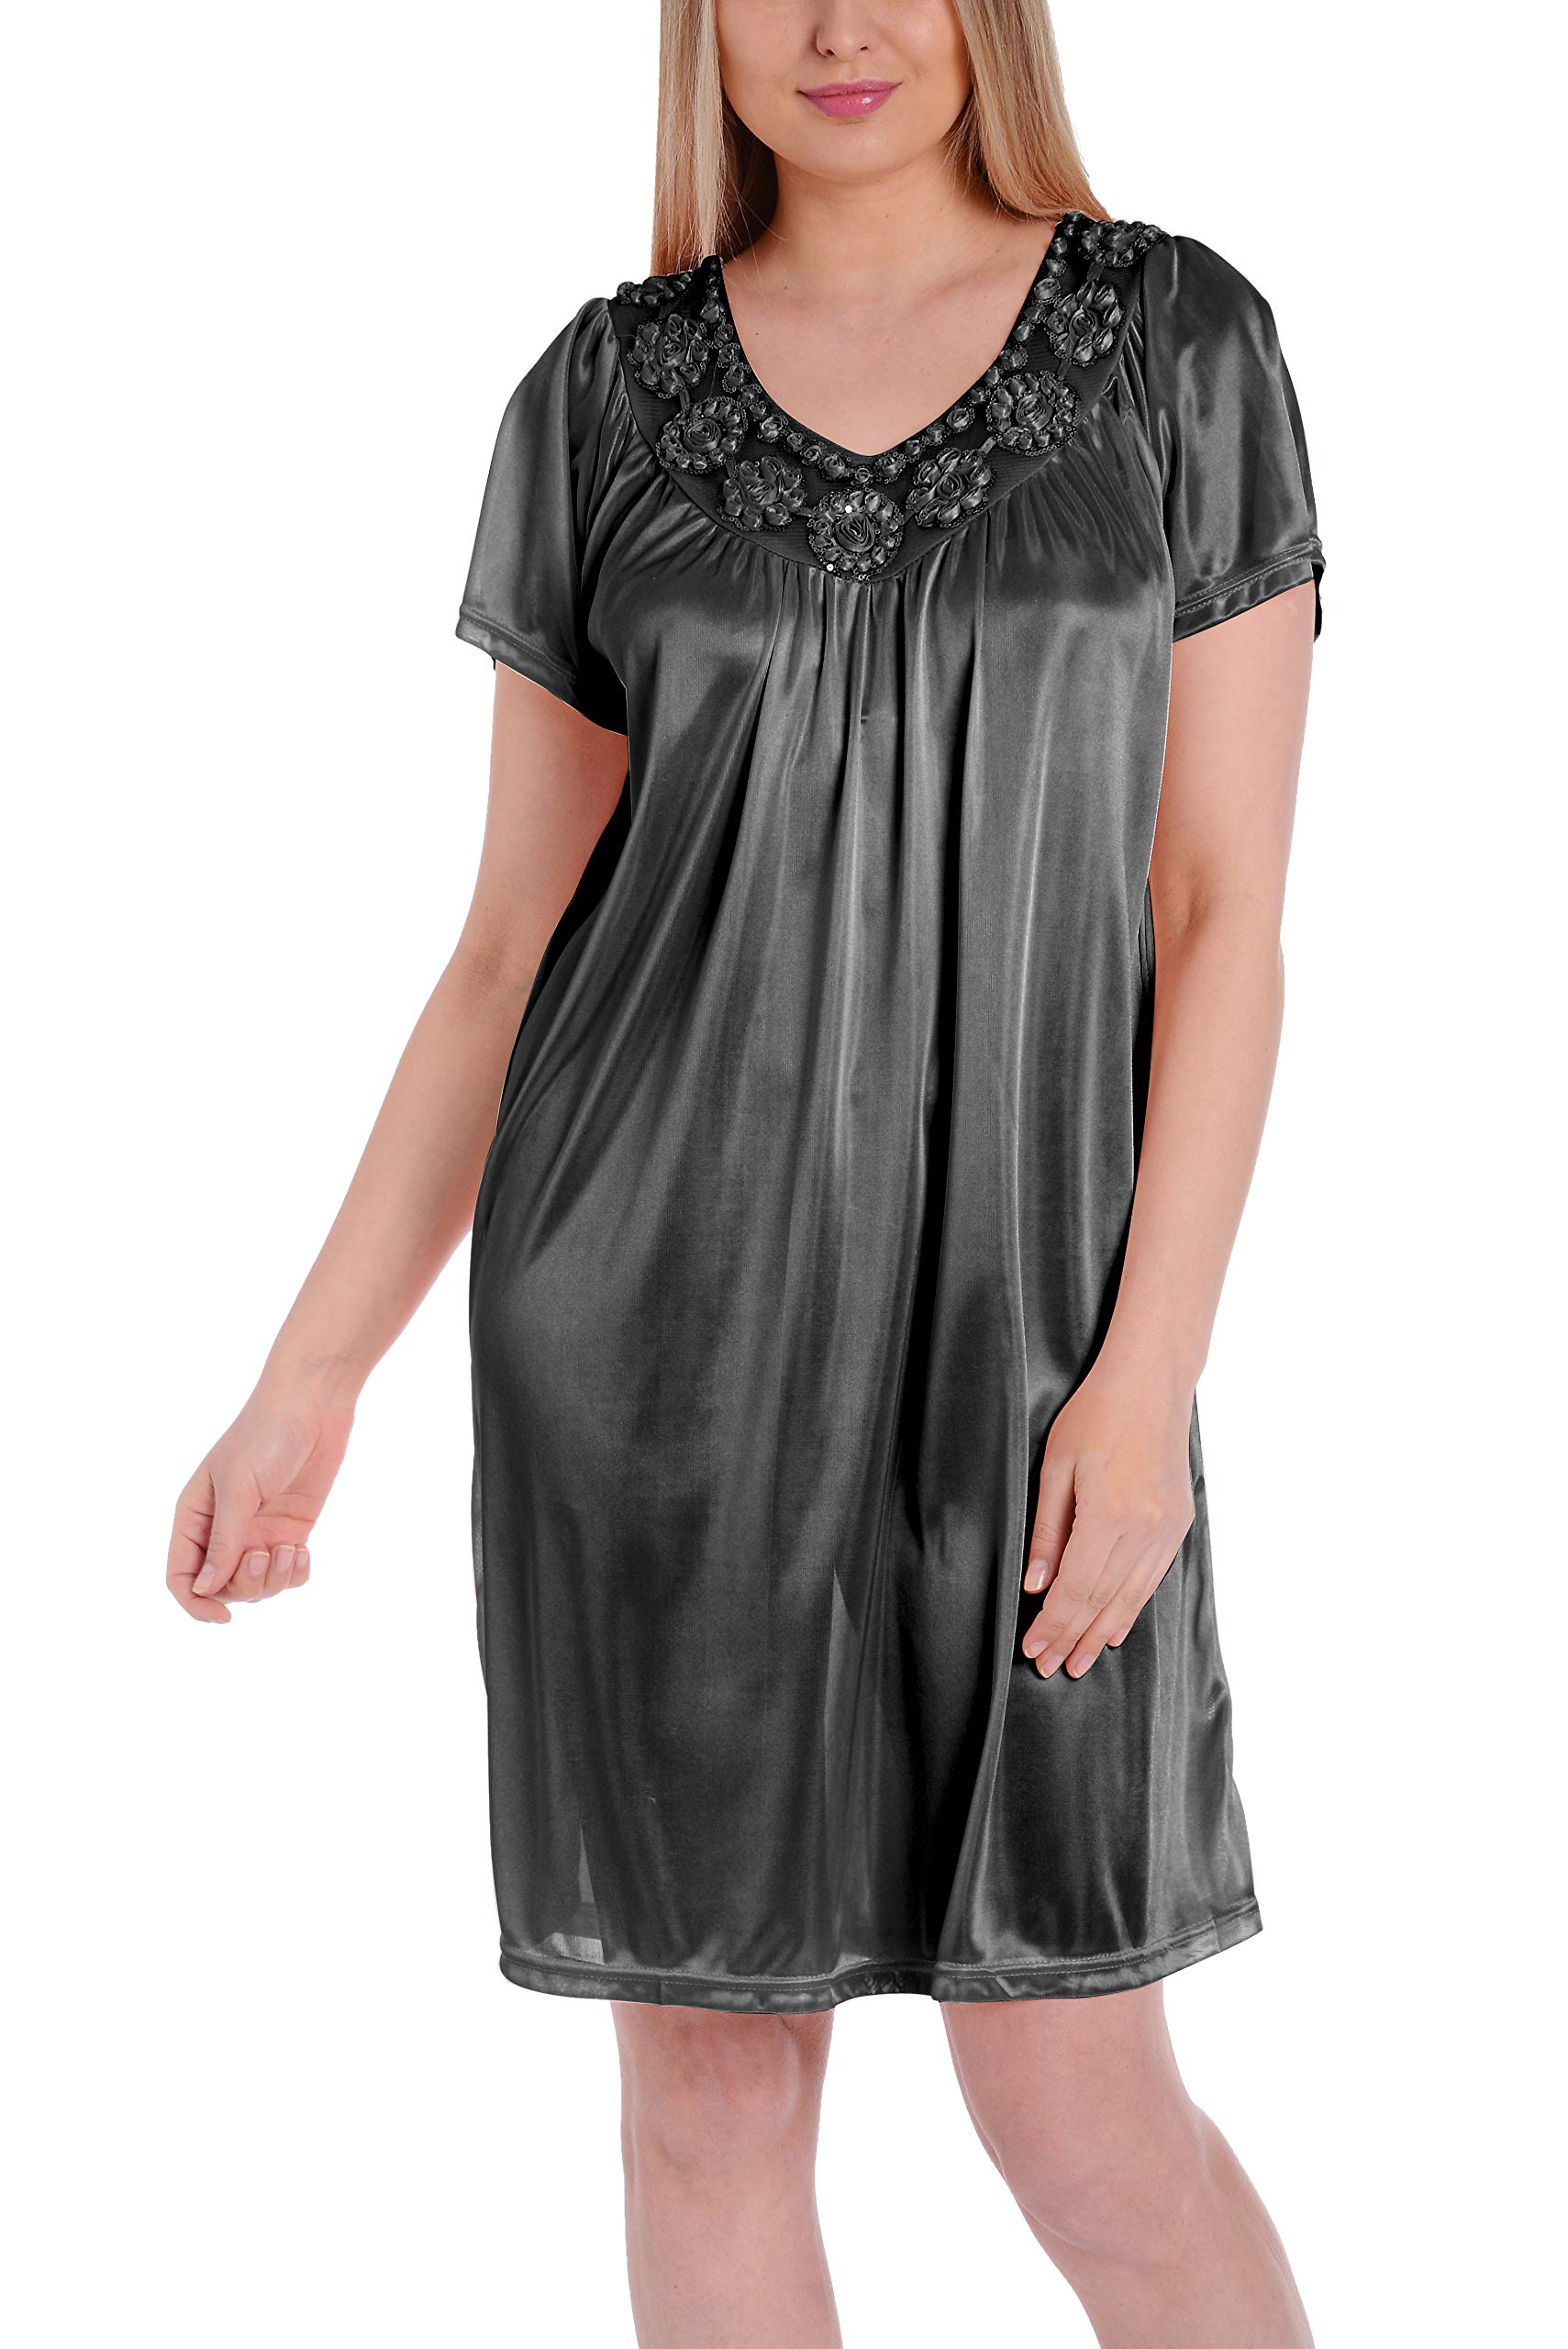 Ezi Women's Satin Silk Short Sleeve Fine Sequin Nightgown